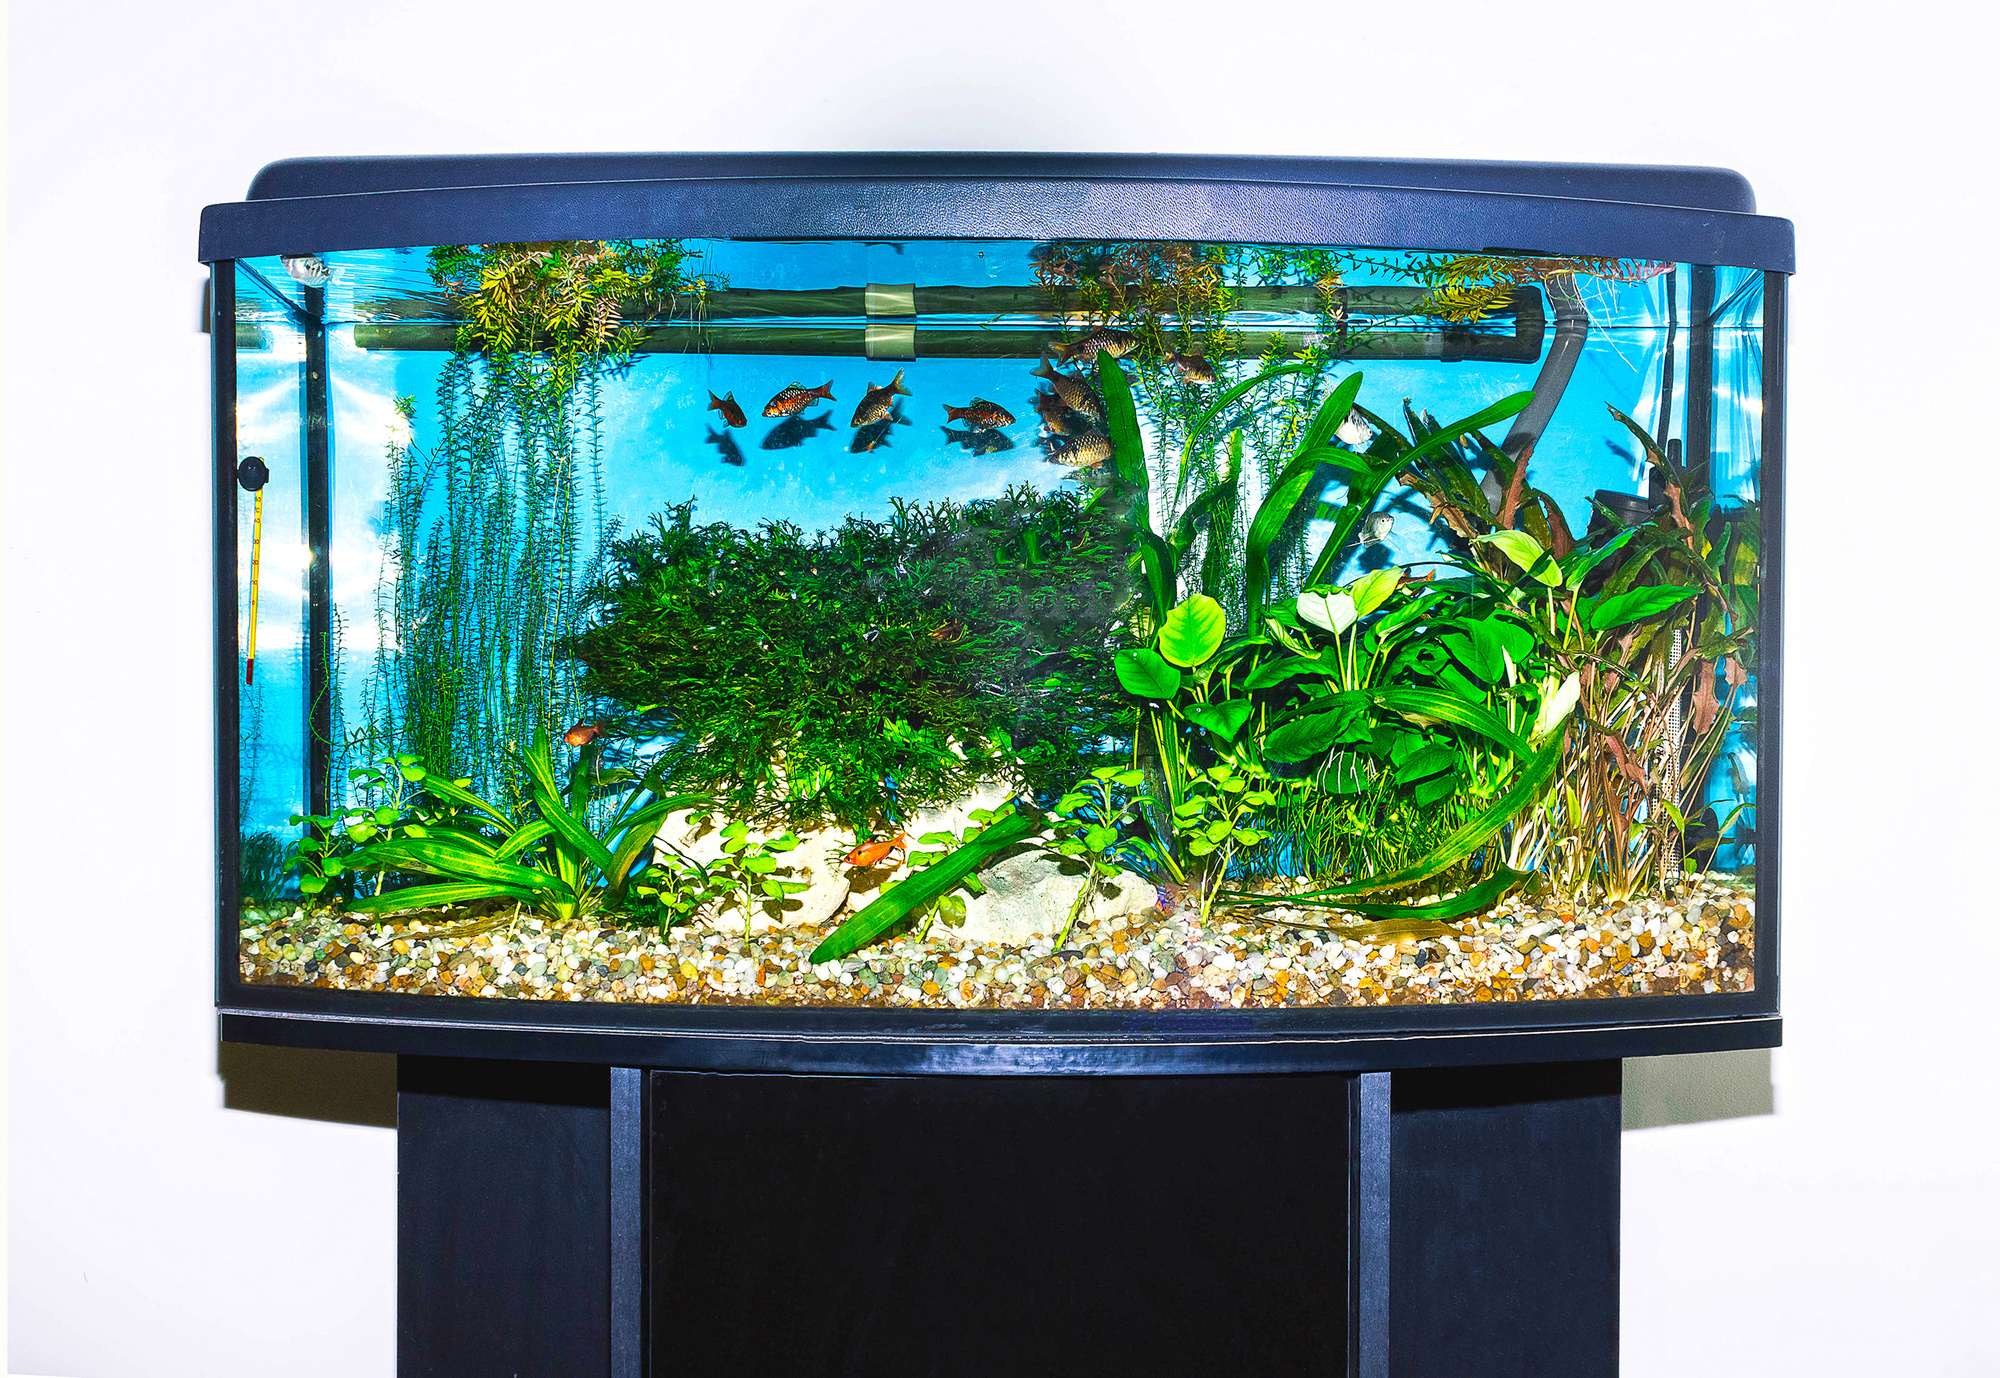 Top ten 20 gallon fish tanks for your home of office for 10 gallon fish tanks